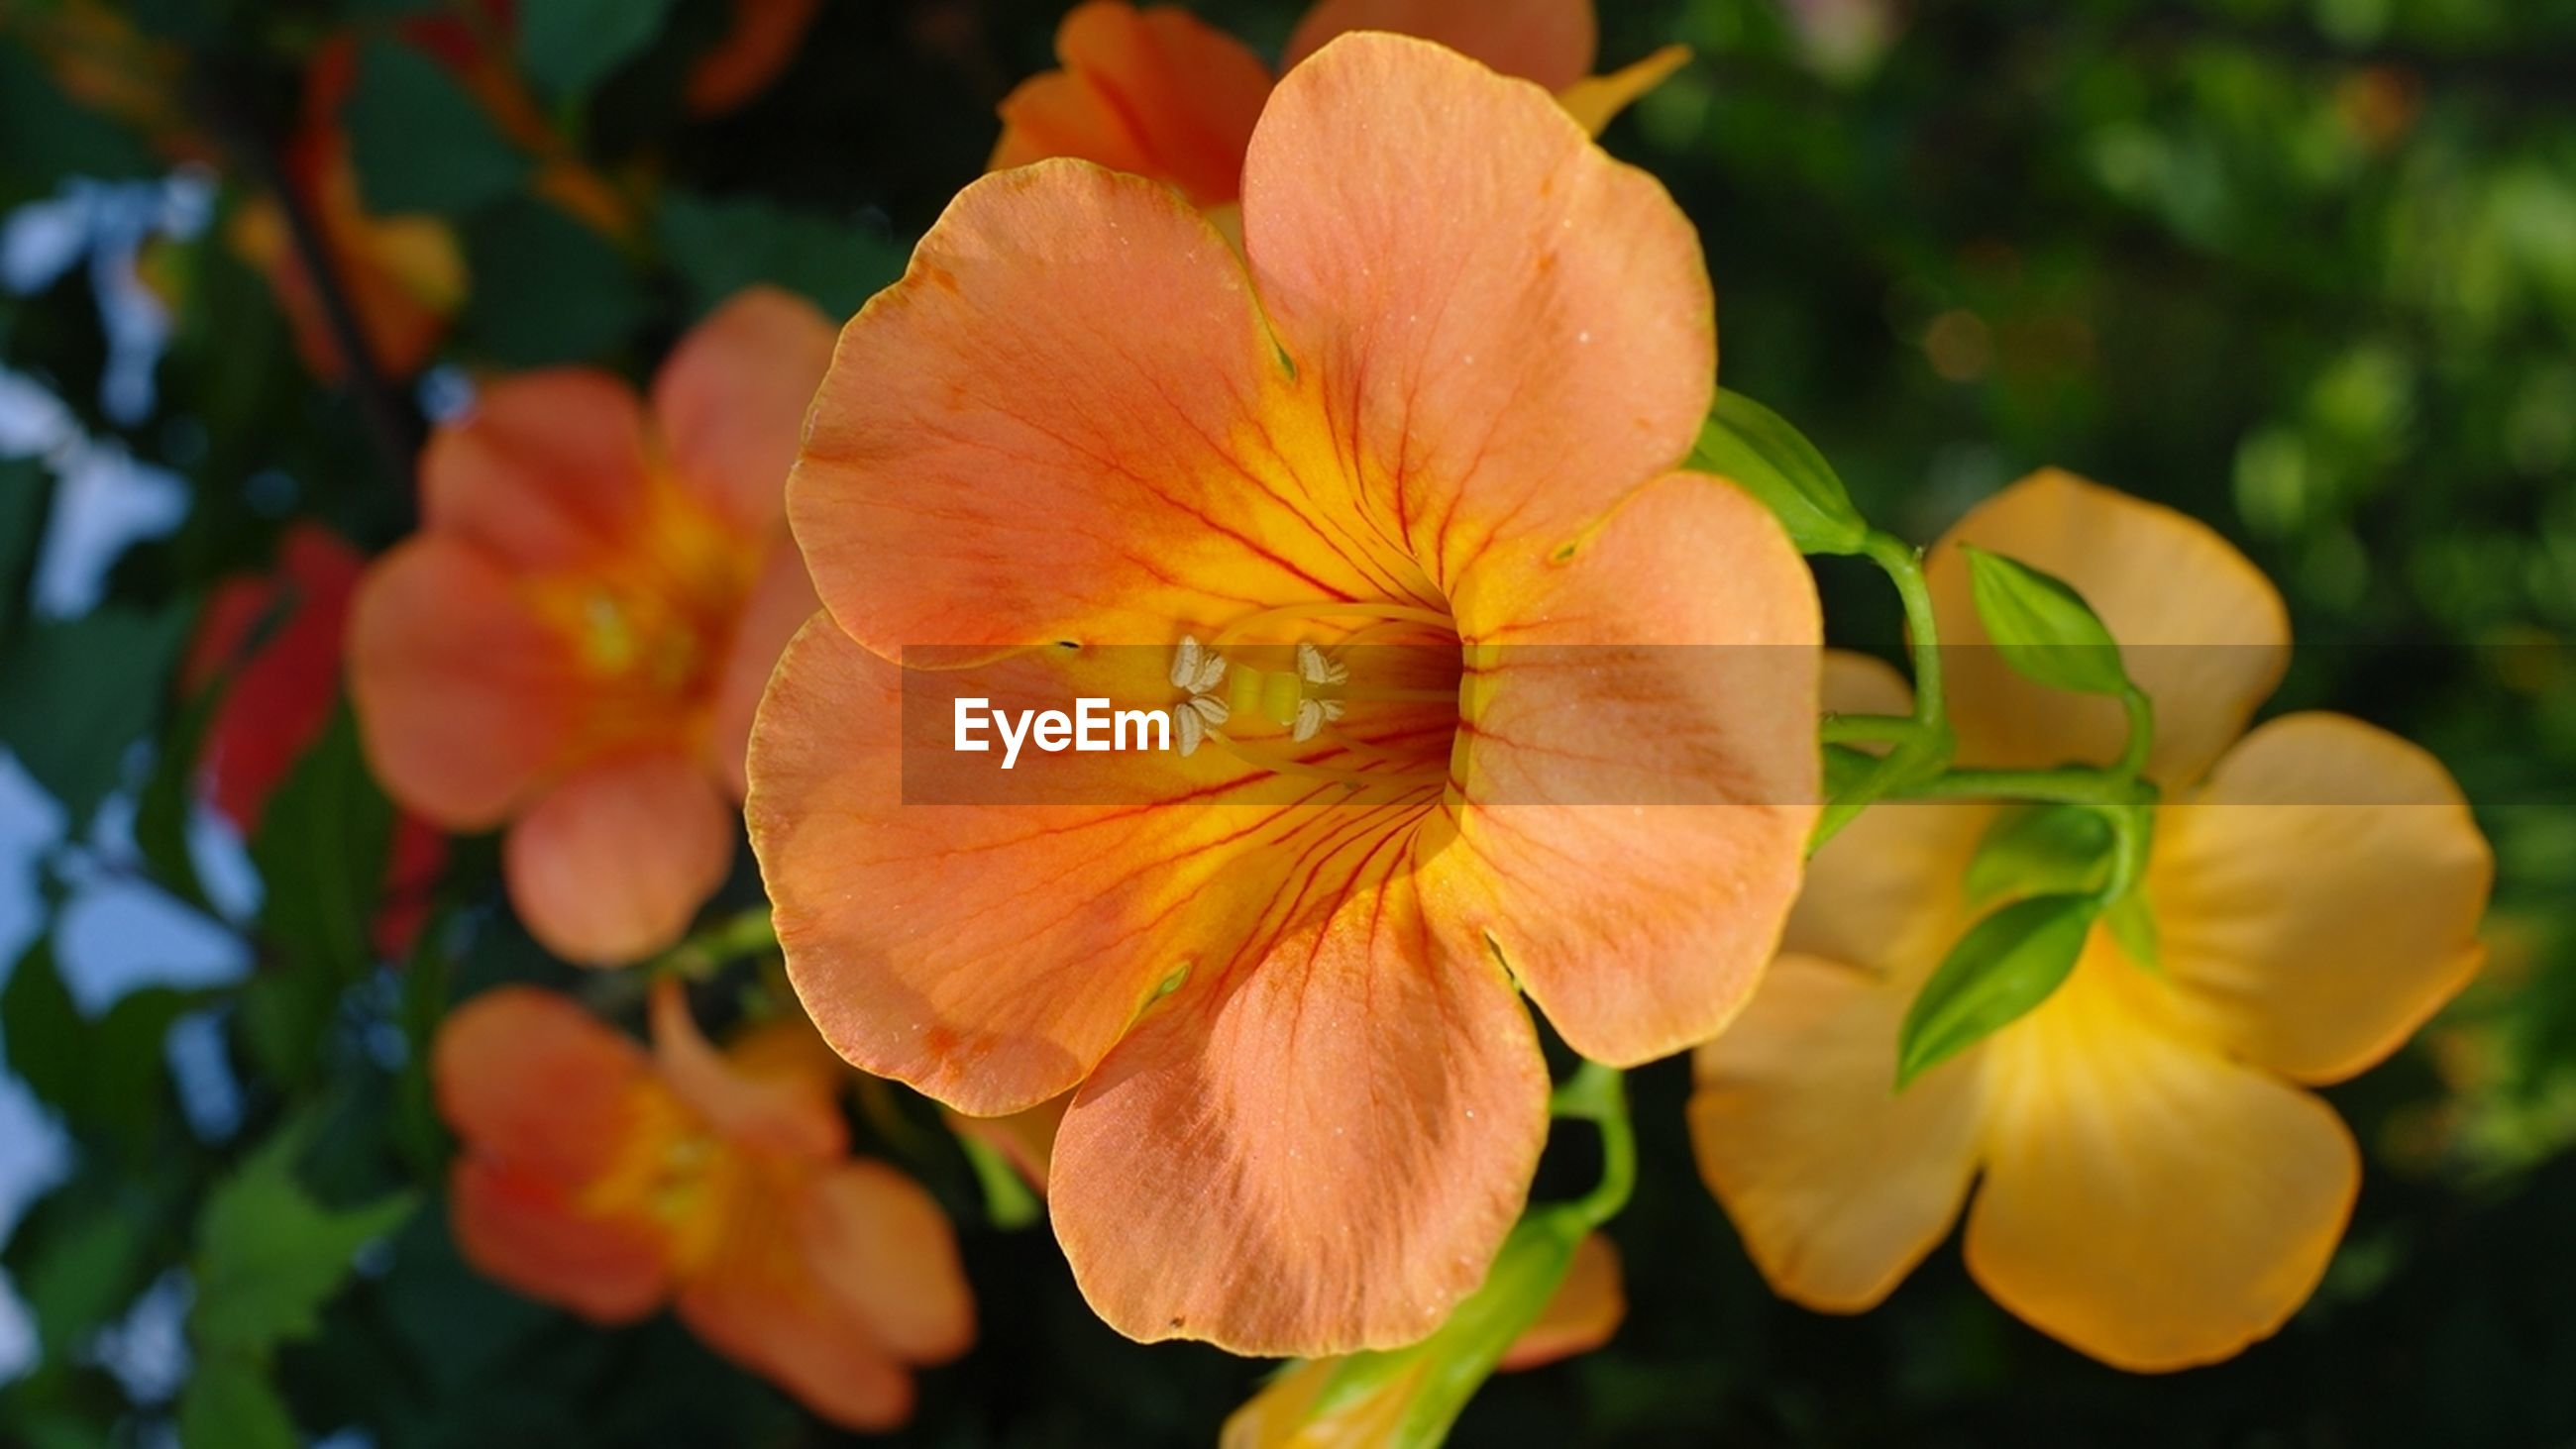 flower, petal, freshness, fragility, flower head, growth, beauty in nature, close-up, focus on foreground, blooming, nature, orange color, plant, stamen, single flower, in bloom, park - man made space, pollen, outdoors, day